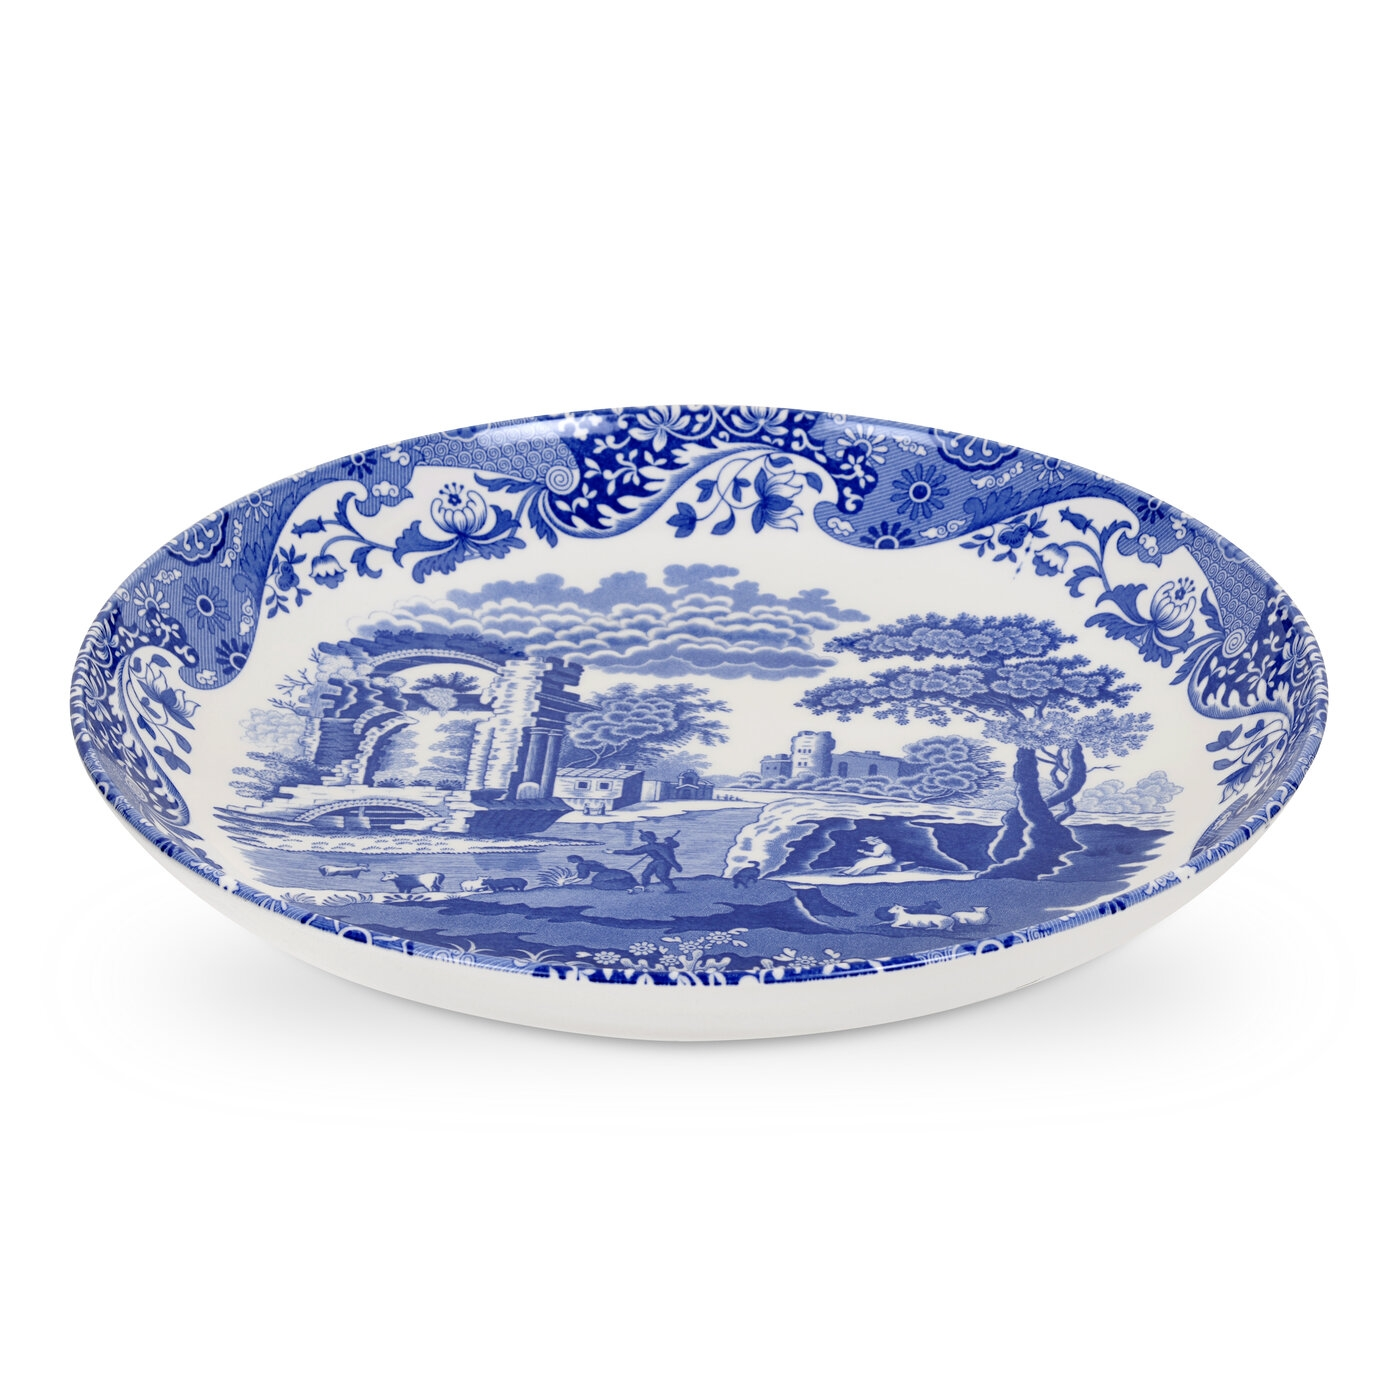 Spode Blue Italian 12 Inch Pasta Bowl image number 0